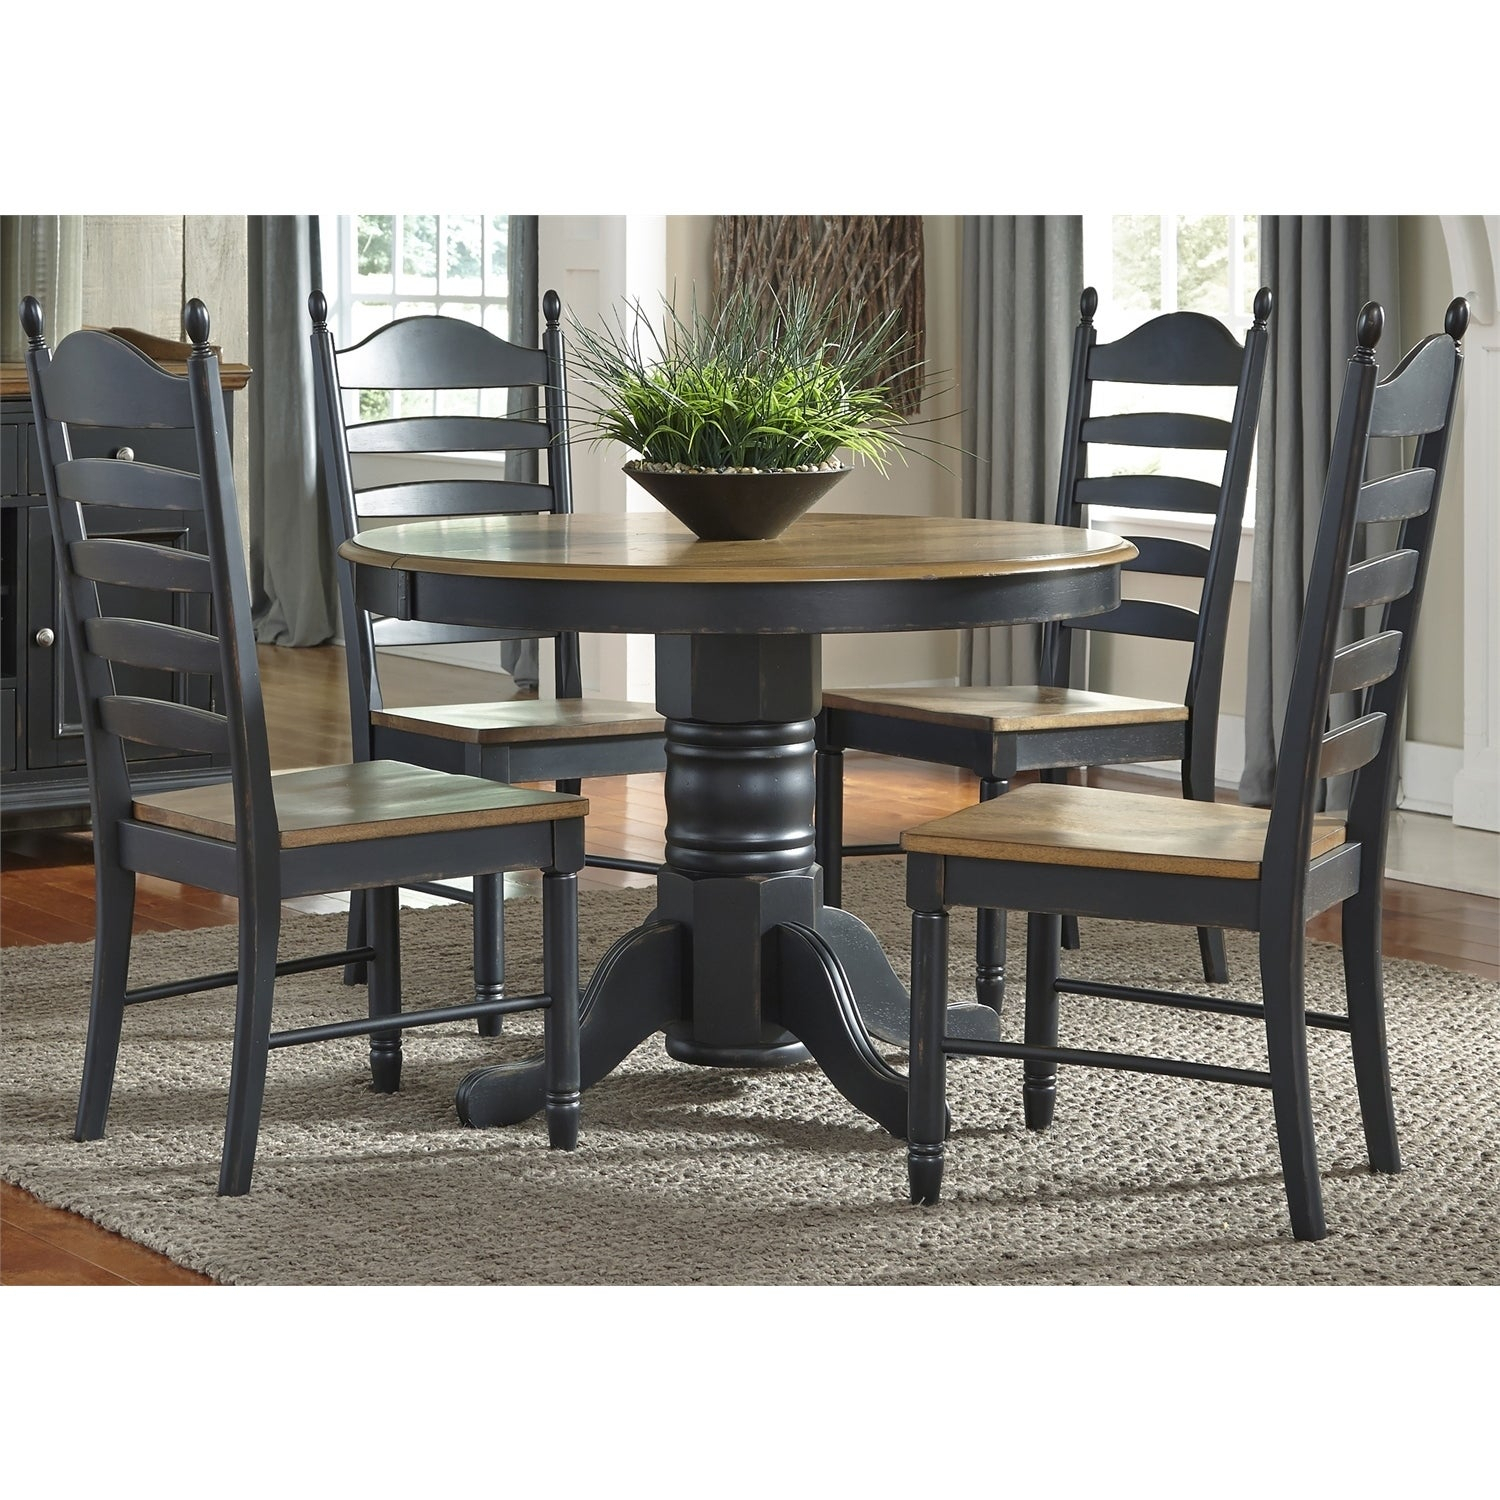 Liberty Honey And Black Oval Pedestal 5 Piece Dinette Set Throughout Most Recent Springfield 3 Piece Dining Sets (View 7 of 20)